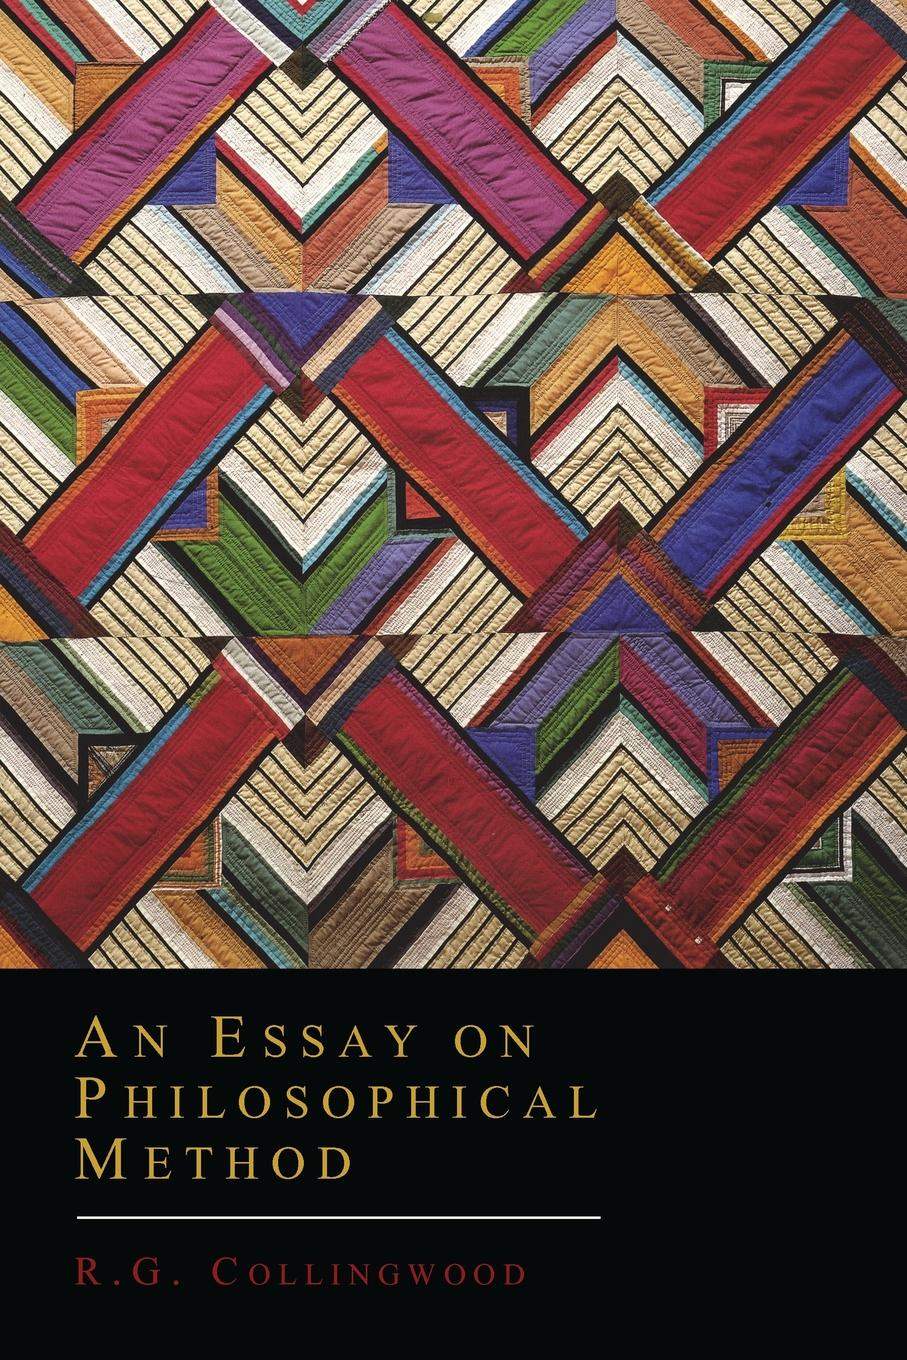 R. G. Collingwood An Essay on Philosophical Method r g latham the natural history of the varieties of man